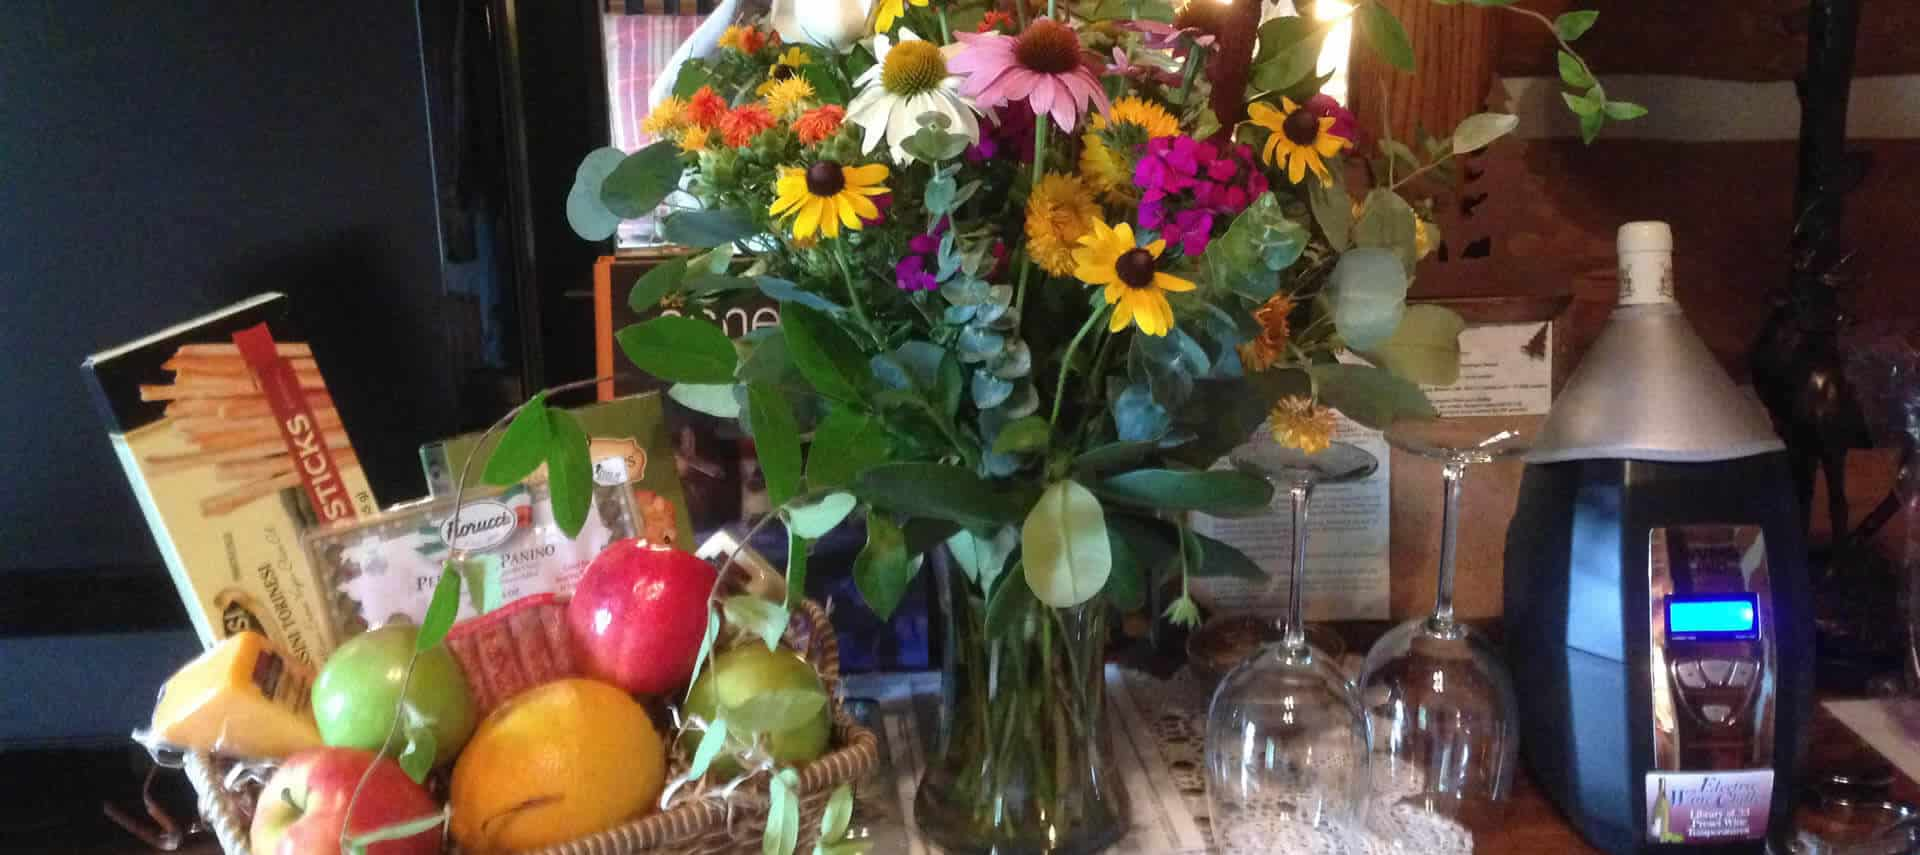 Pretty wildflowers in a glass vase next to a basket of fruit and snacks and bottle of wine in chiller.